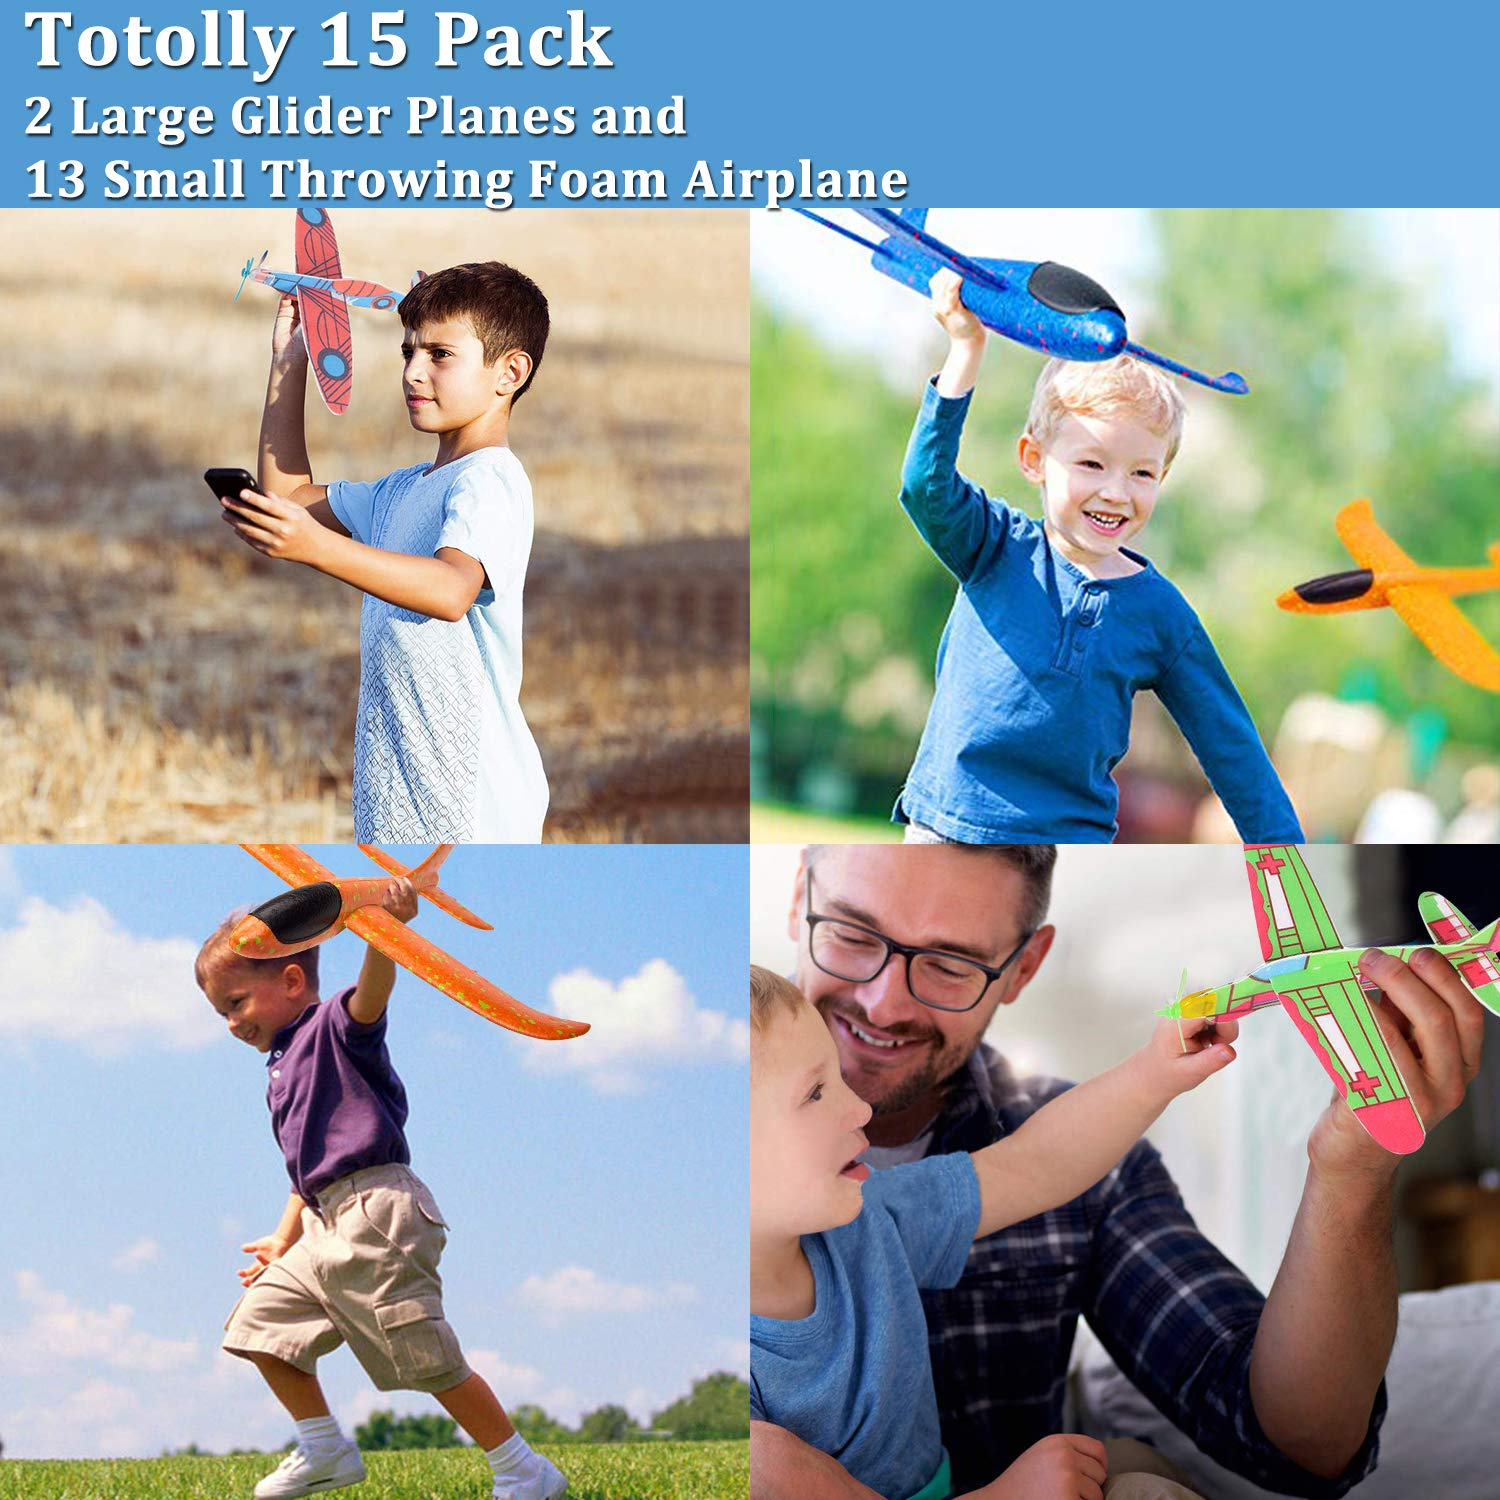 12.5'' Glider Planes,Throwing Foam Airplane ,Dual Flight Mode,Flying Aircraft, Airplane Toy for Kids 3 4 5 6 7 Years Old,Outdoor Sport Game Toys, Boys Girls Flying Party Favors Birthday Gifts by Jupitaz (Image #4)